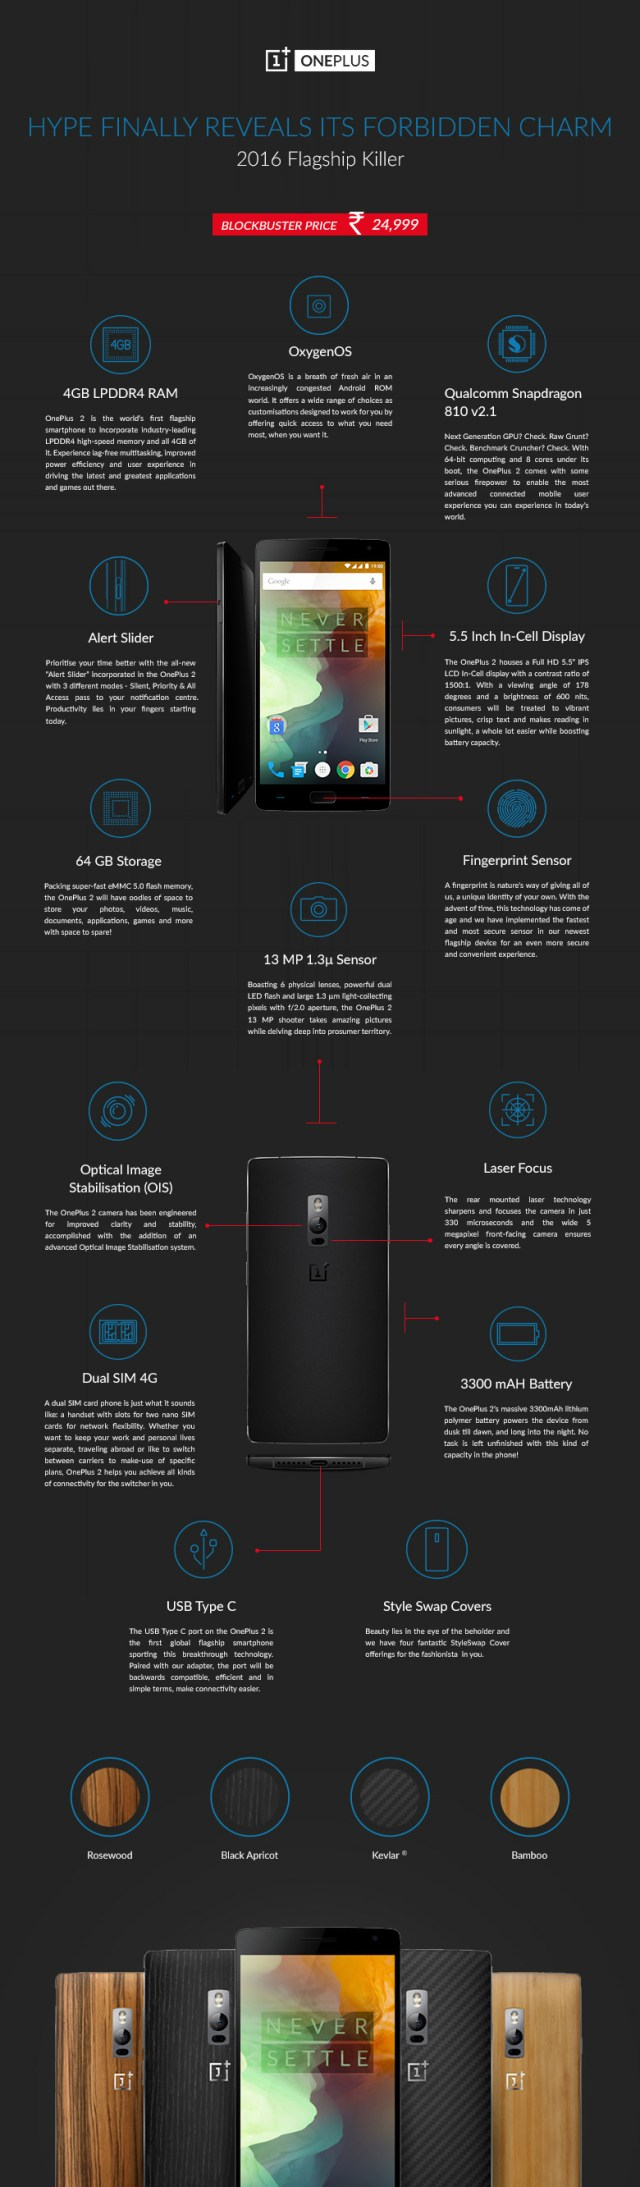 oneplus-two-specifications